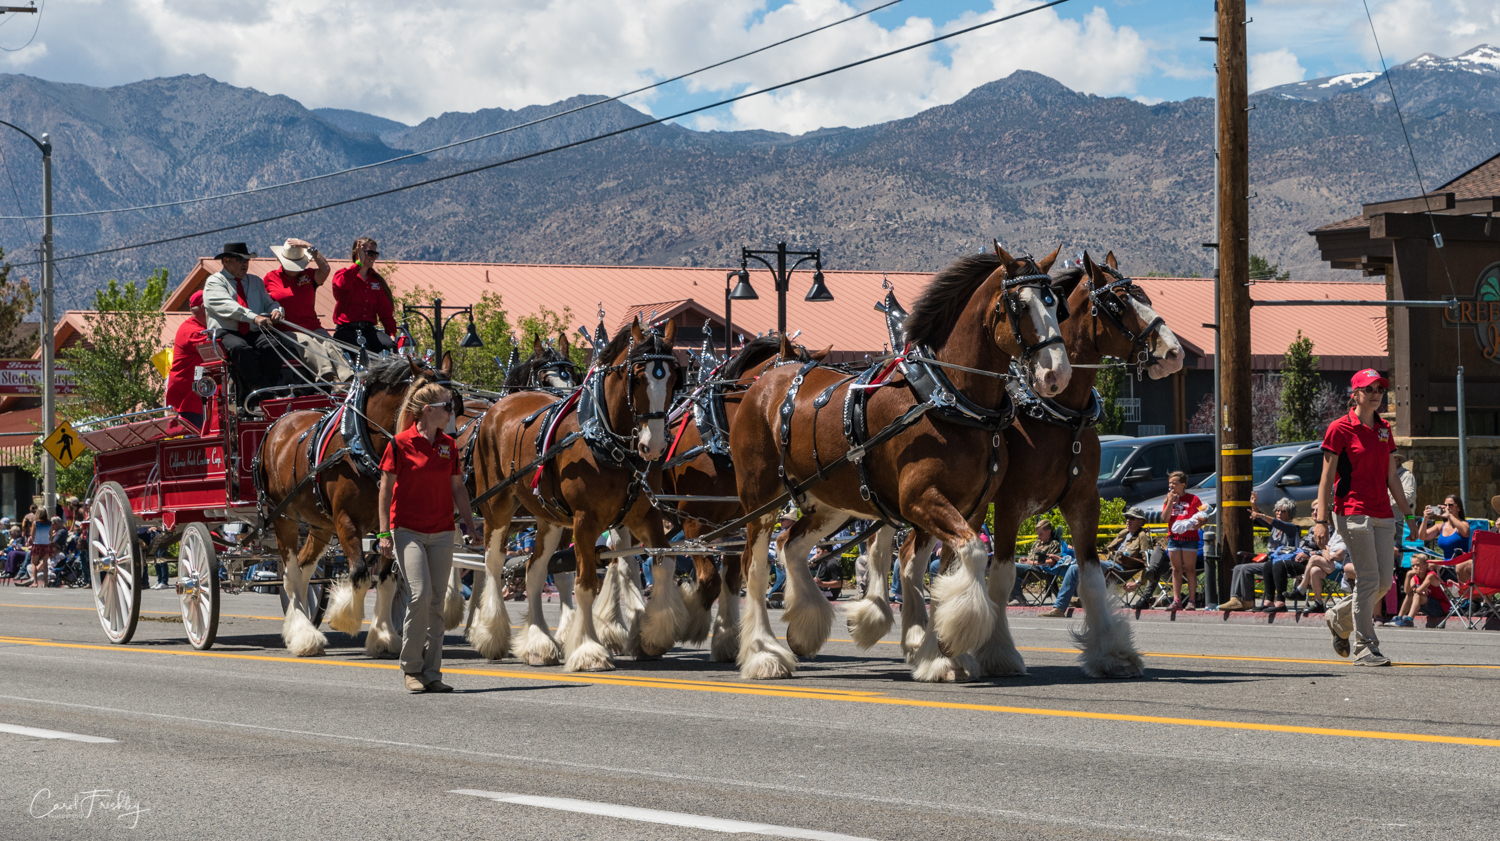 There was a small group of Clydesdales.